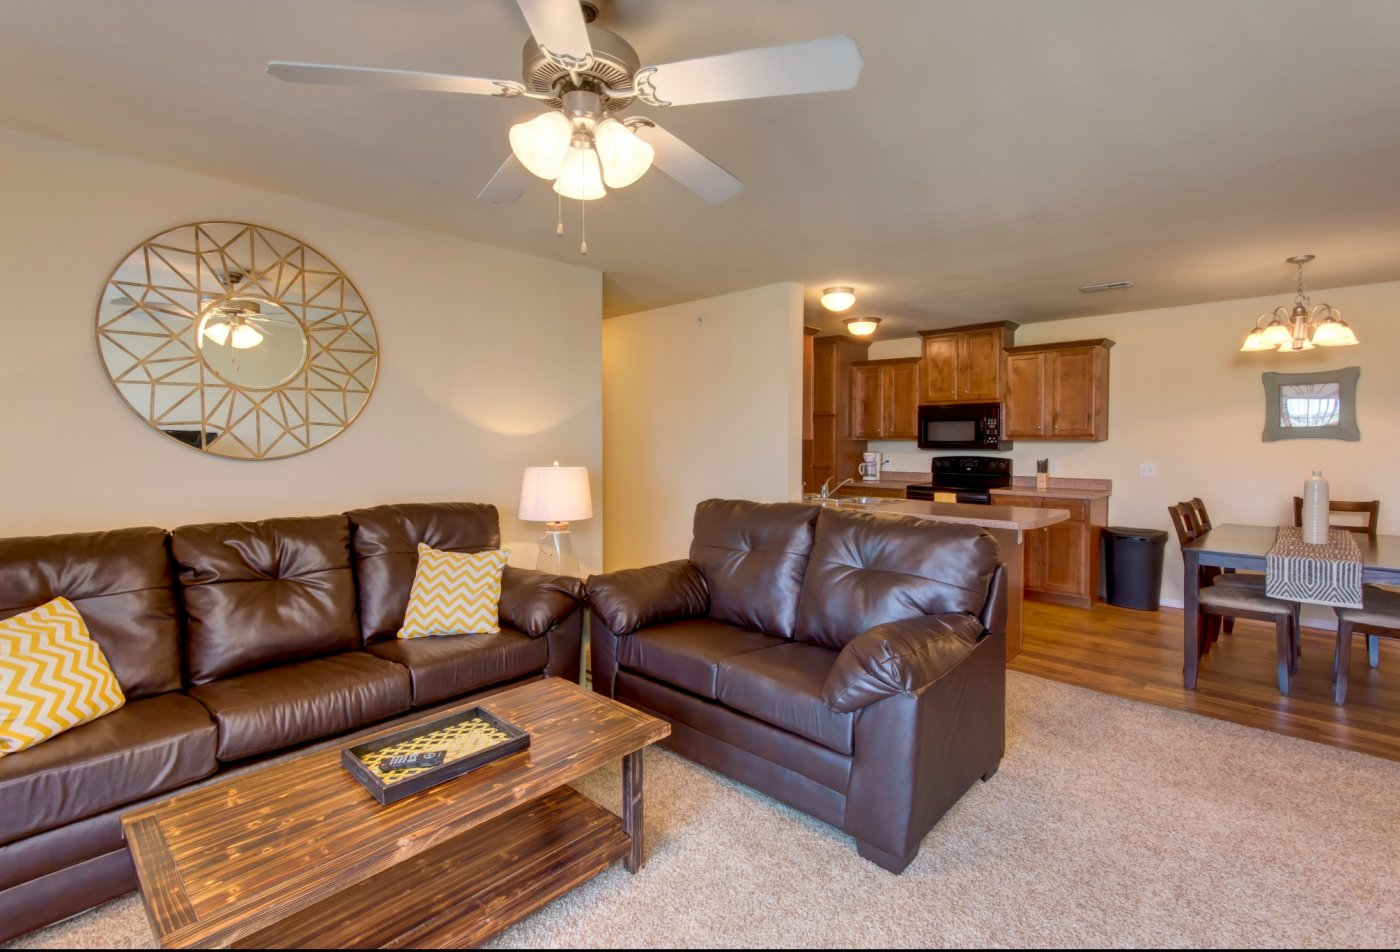 Furnished Apartment with modern furnishings and leather sofas. Living room view over looking the kitchen with oak cabinets and black appliances.